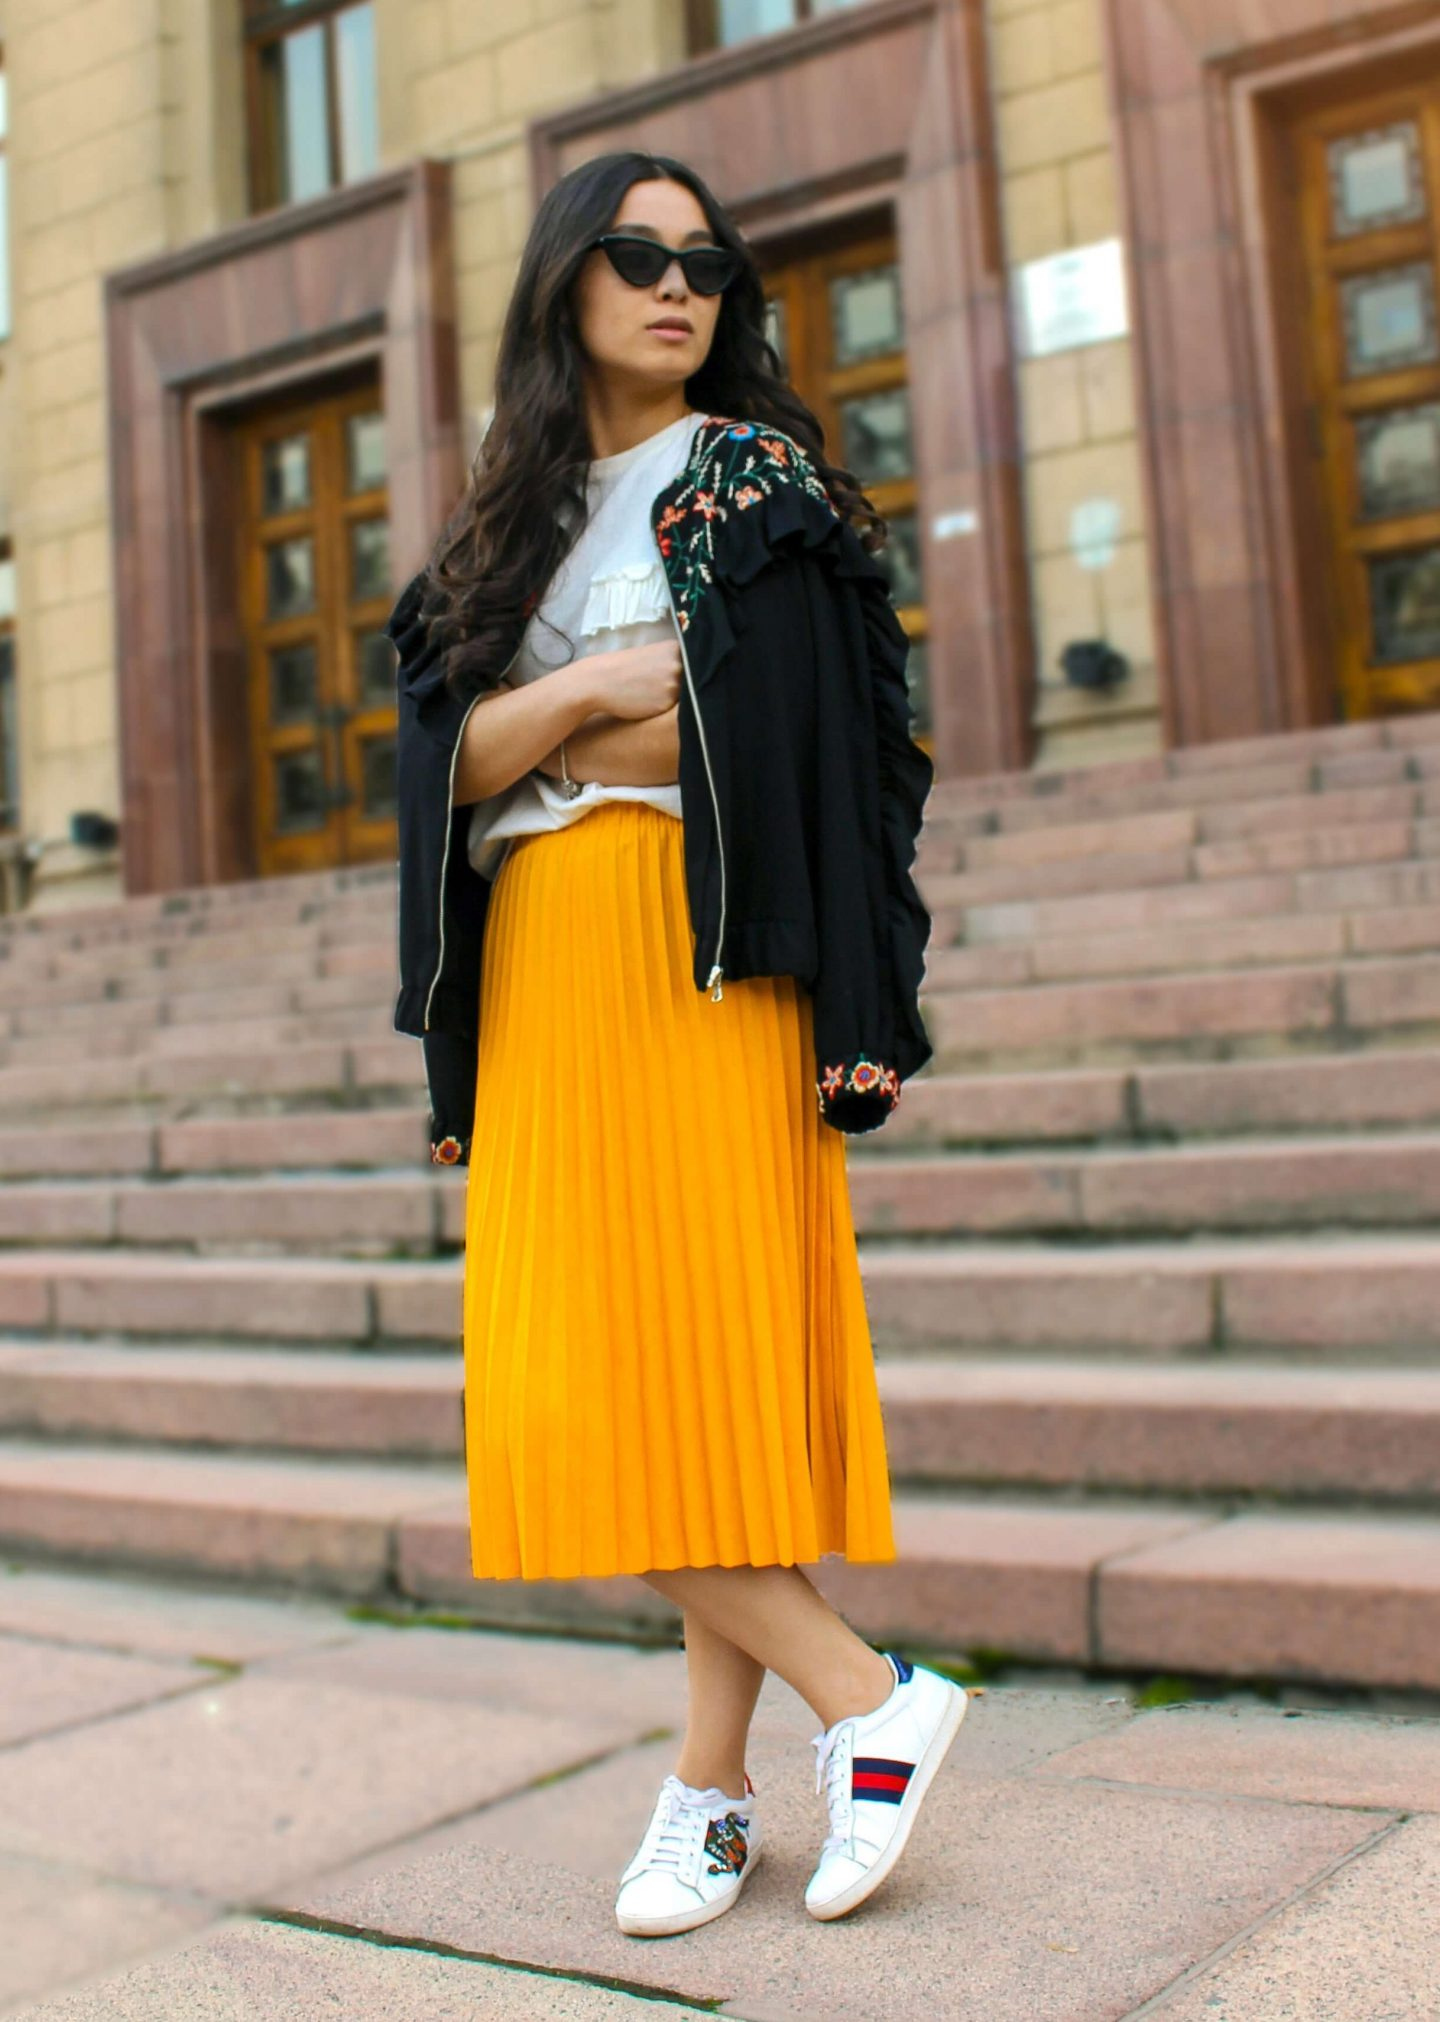 13 Practical Fashion Trends That Are Easy To Wear In 2019 18